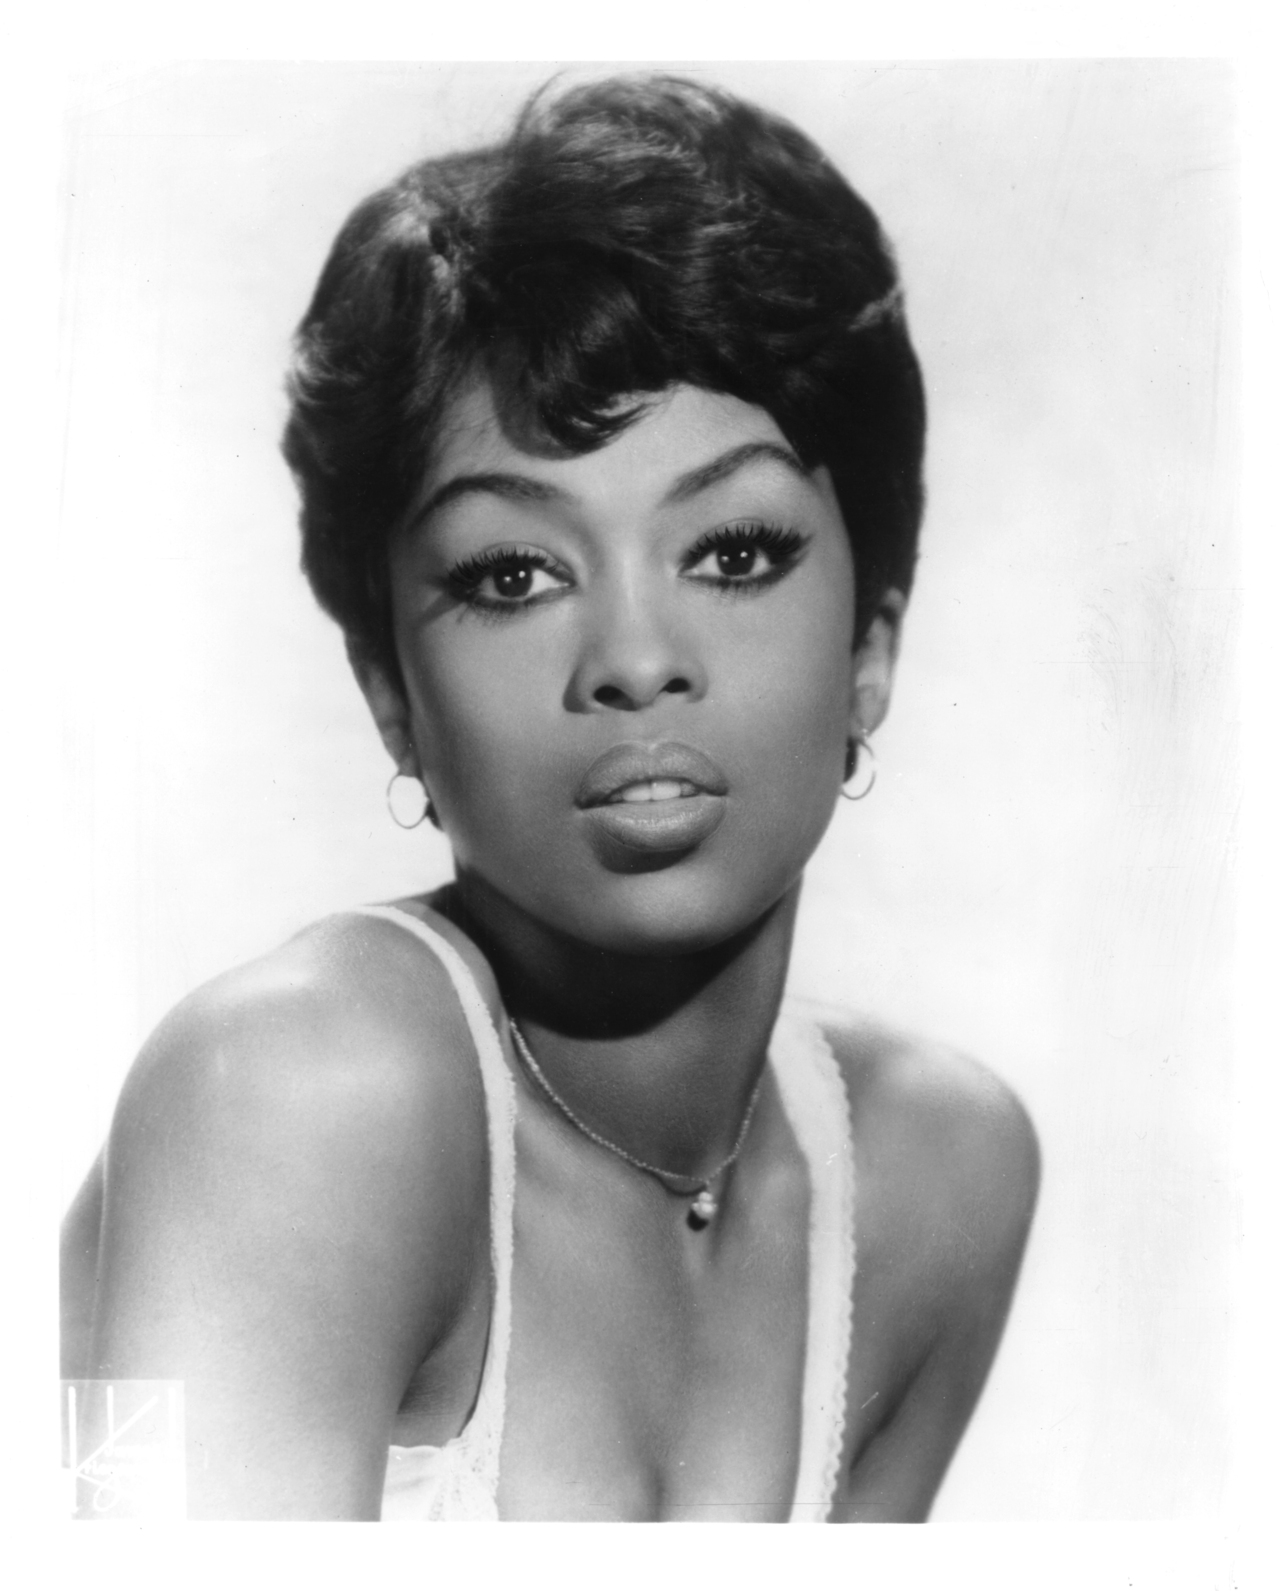 Images Of Lola Falana Classy photo of lola falana | the history, culture and legacy of the